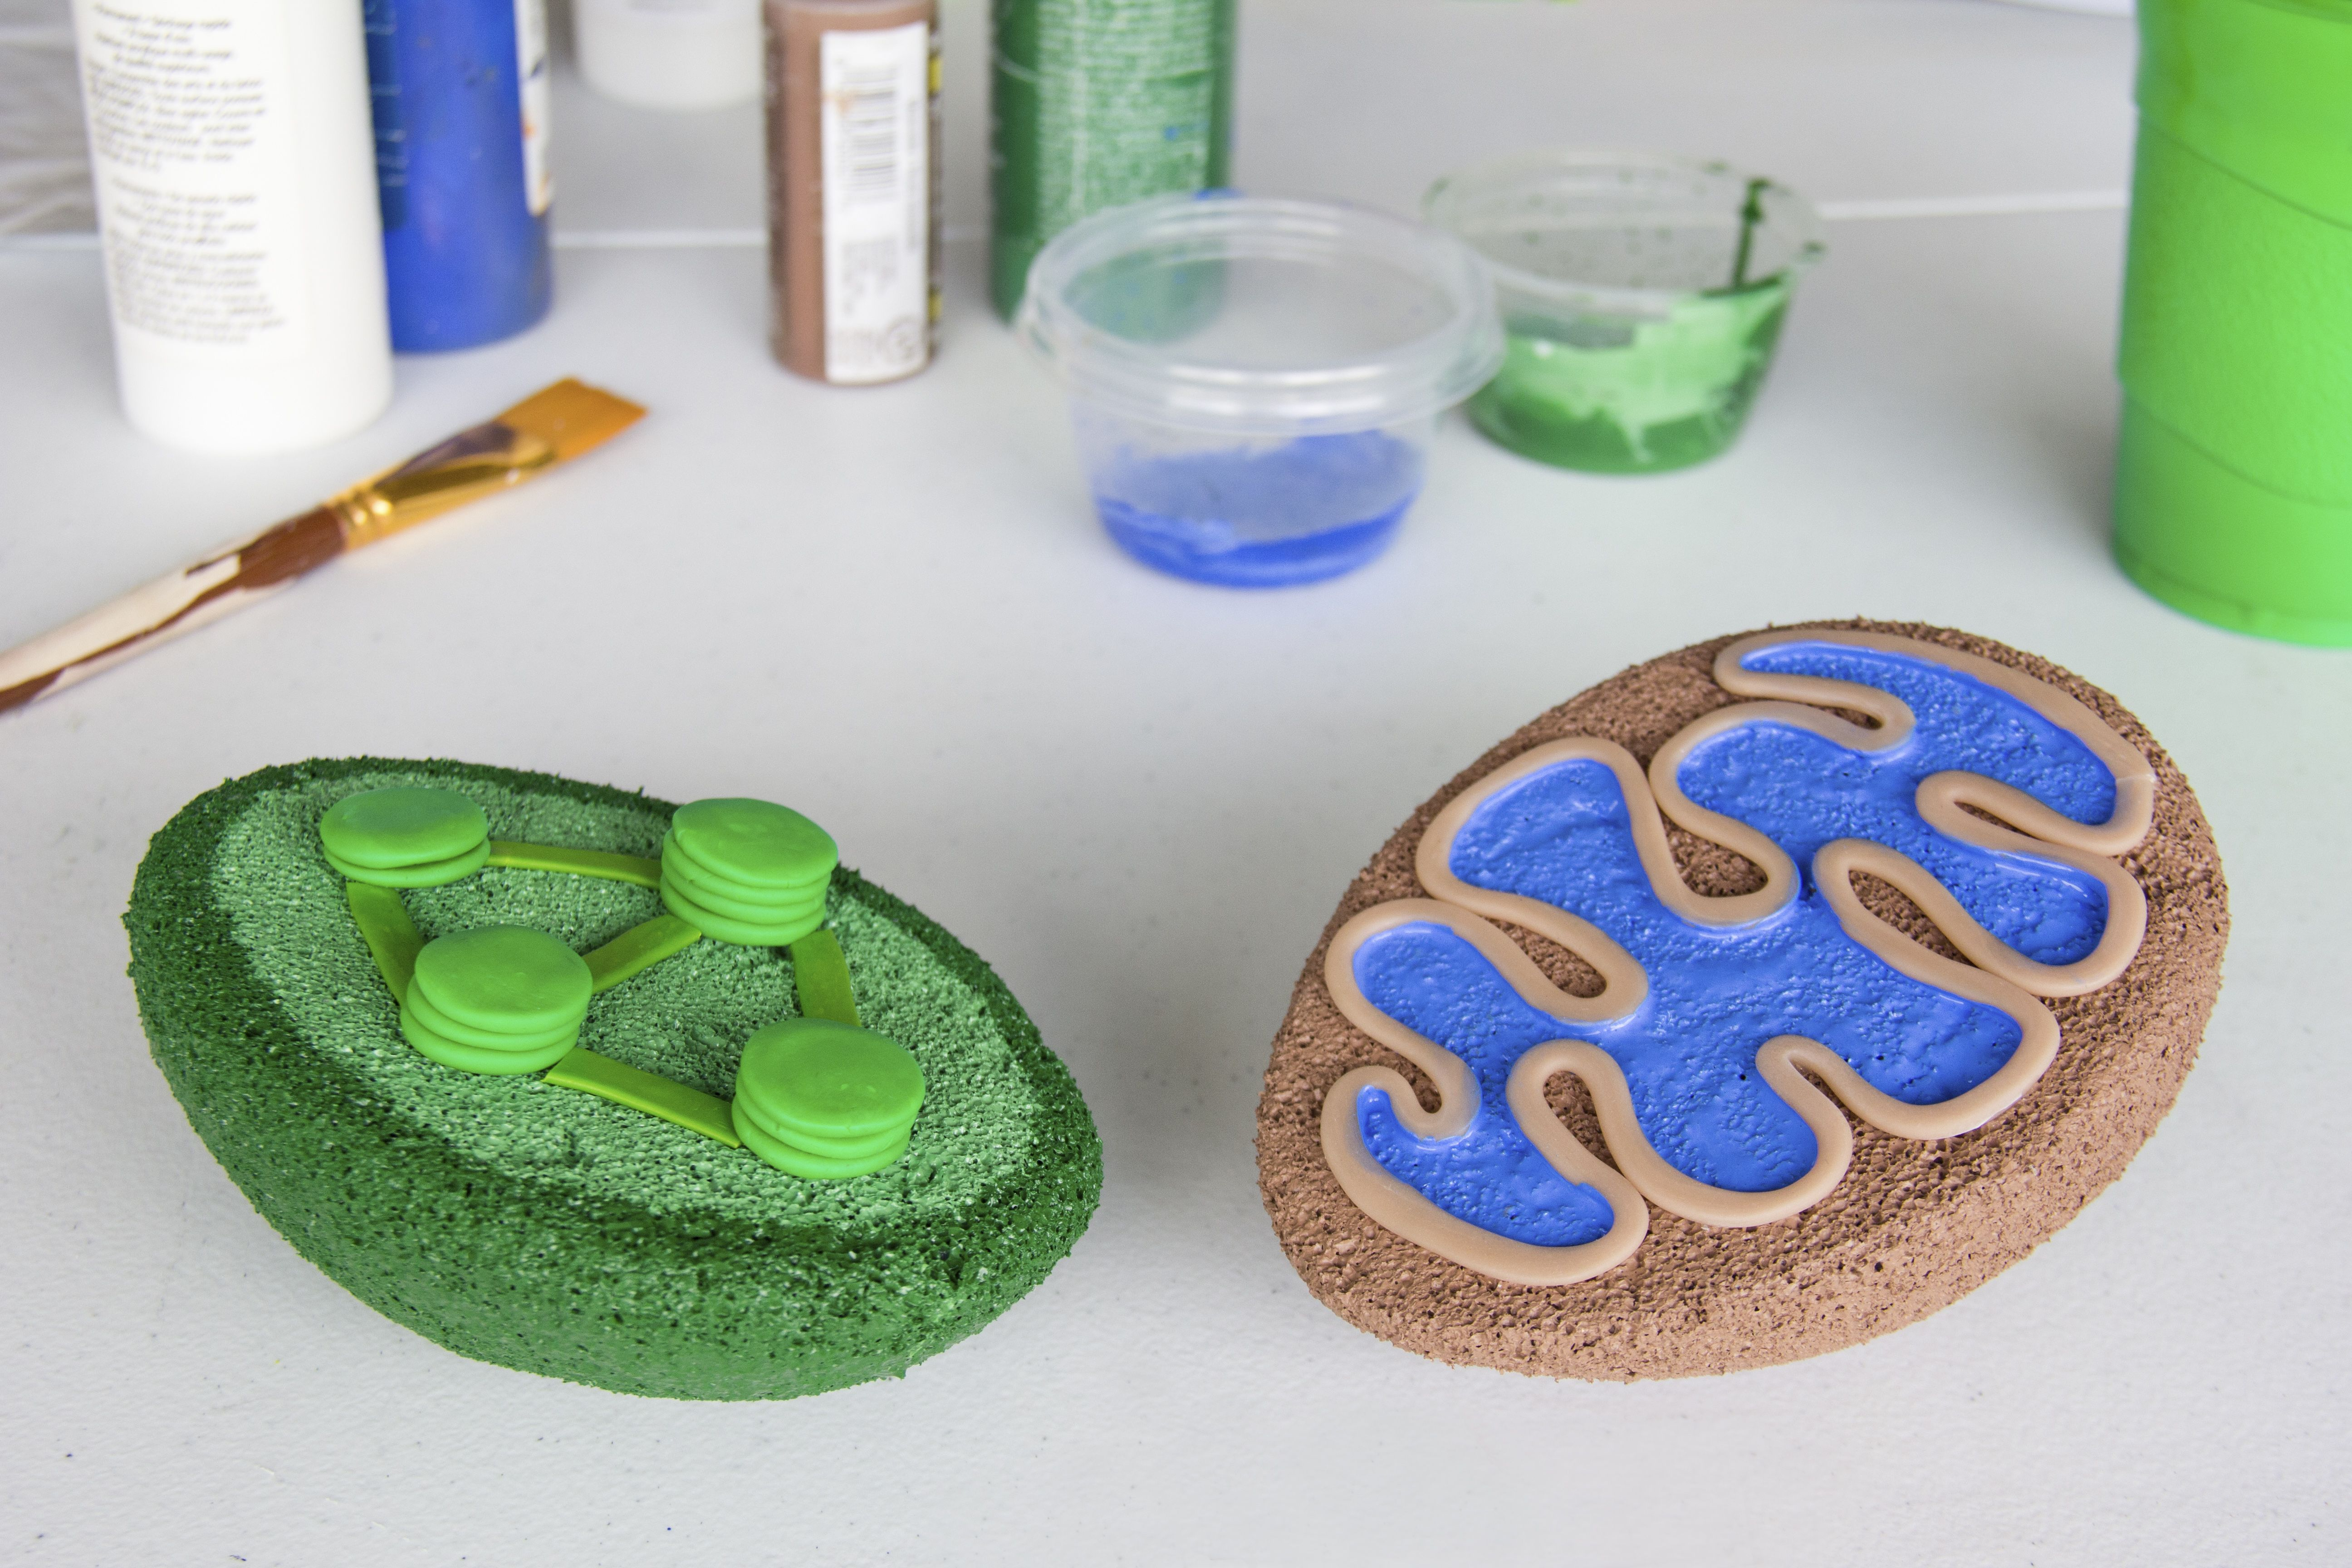 3d plant cell model project materials - How To Build A 3d Model For Cell Biology Projects Mitochondria Chloroplast